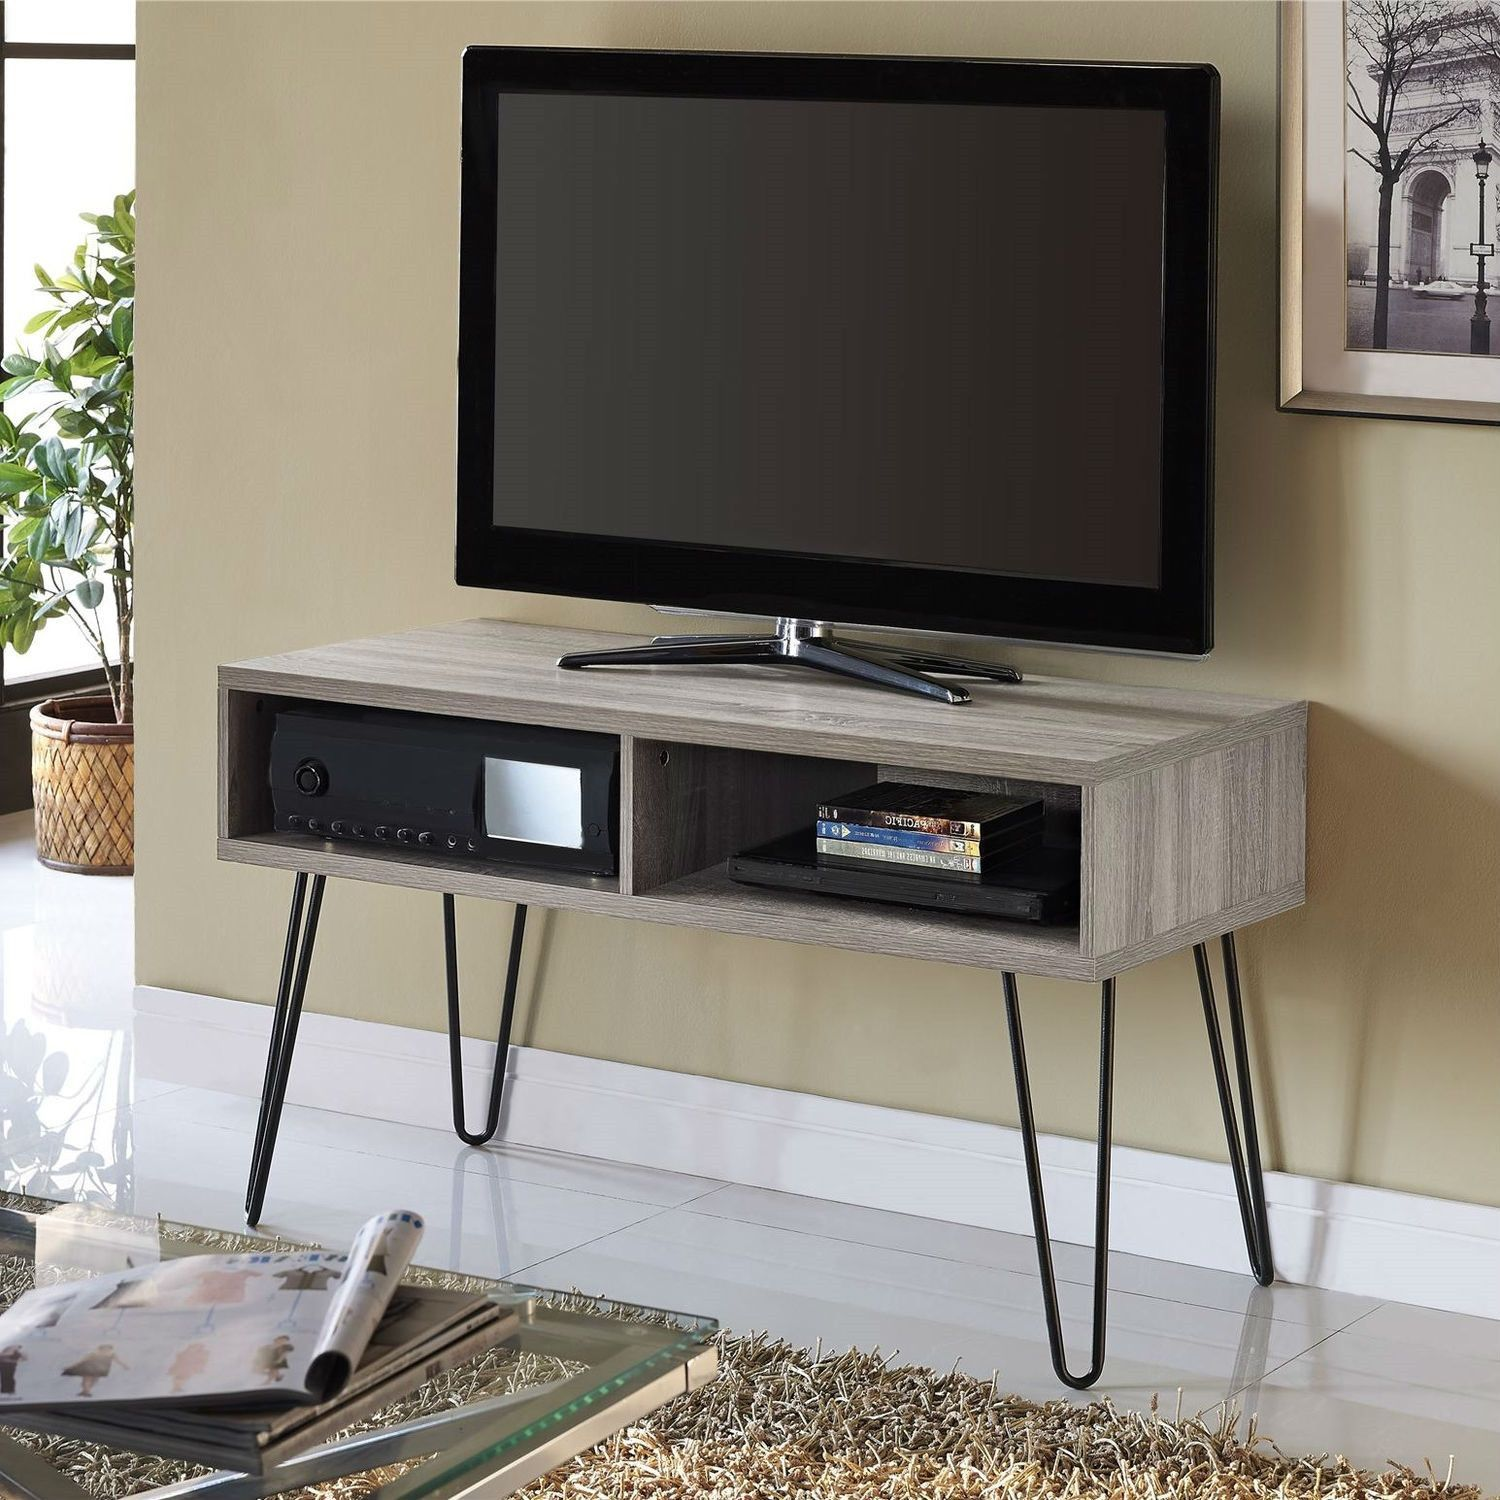 Retro Style Modern Classic Tv Stand With Hairpin Legs Petit Meuble Tv Petit Meuble Meuble